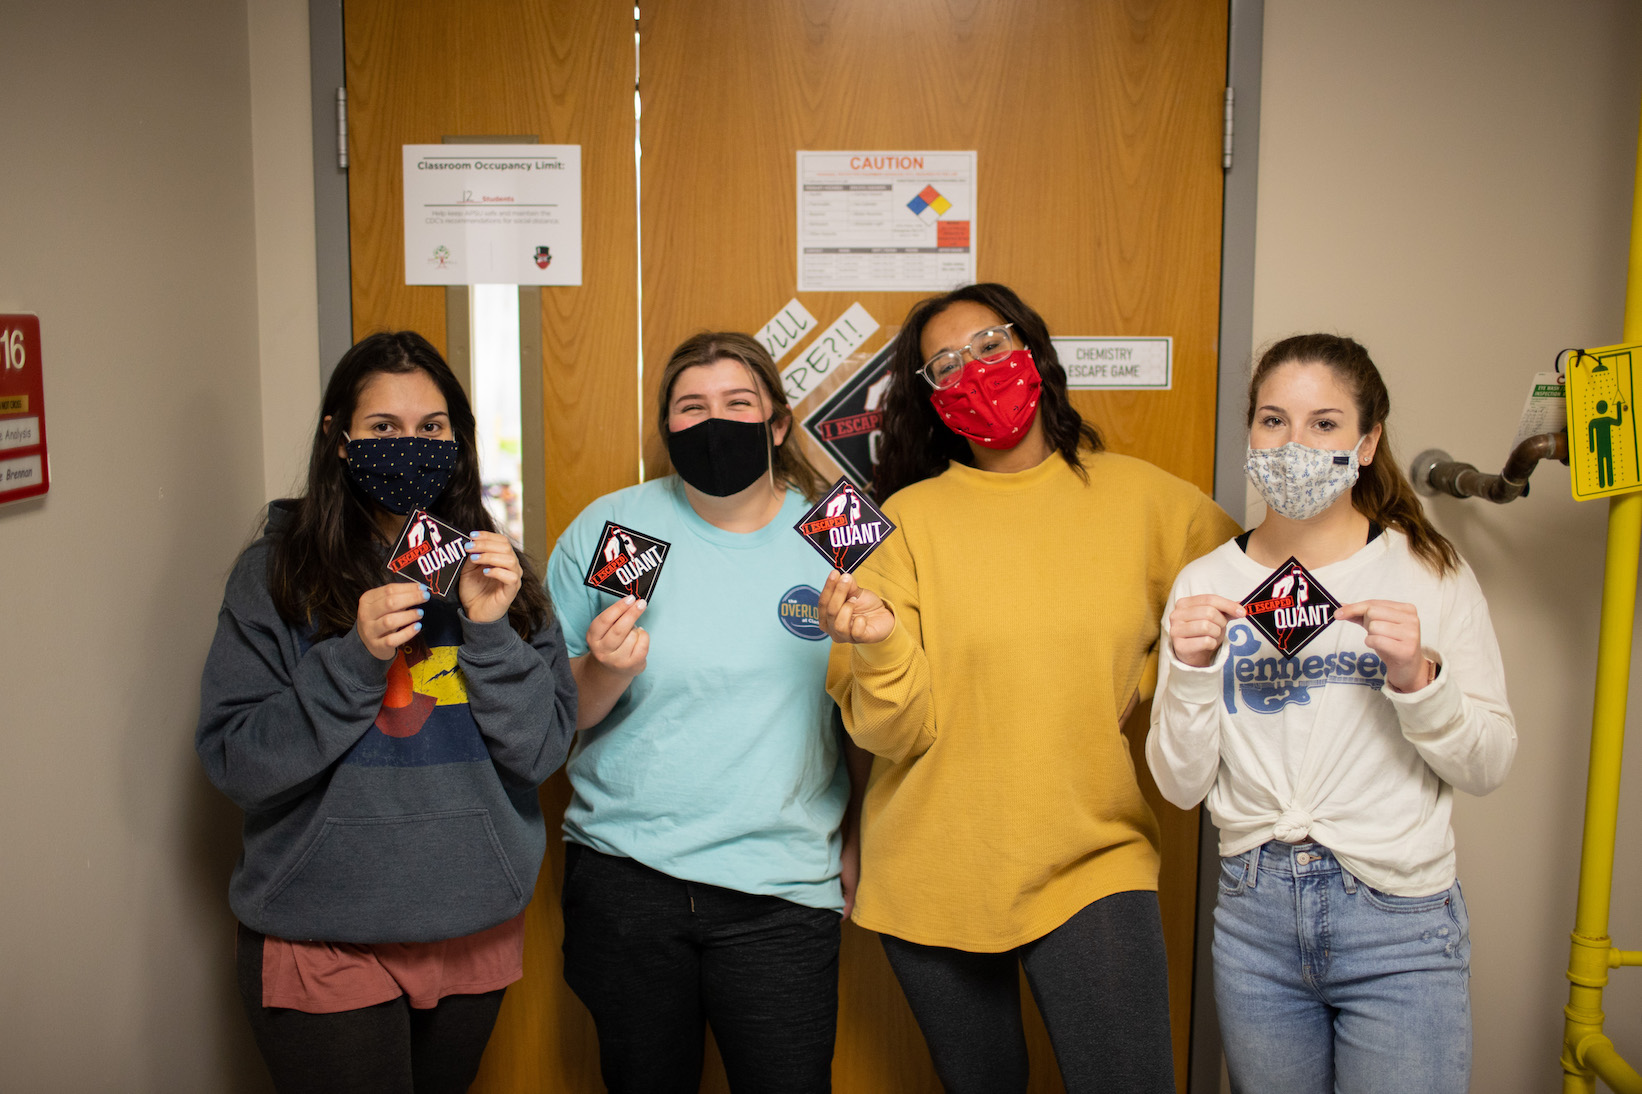 APSU students 'escape' chemistry lab by finding the fictional copper thief